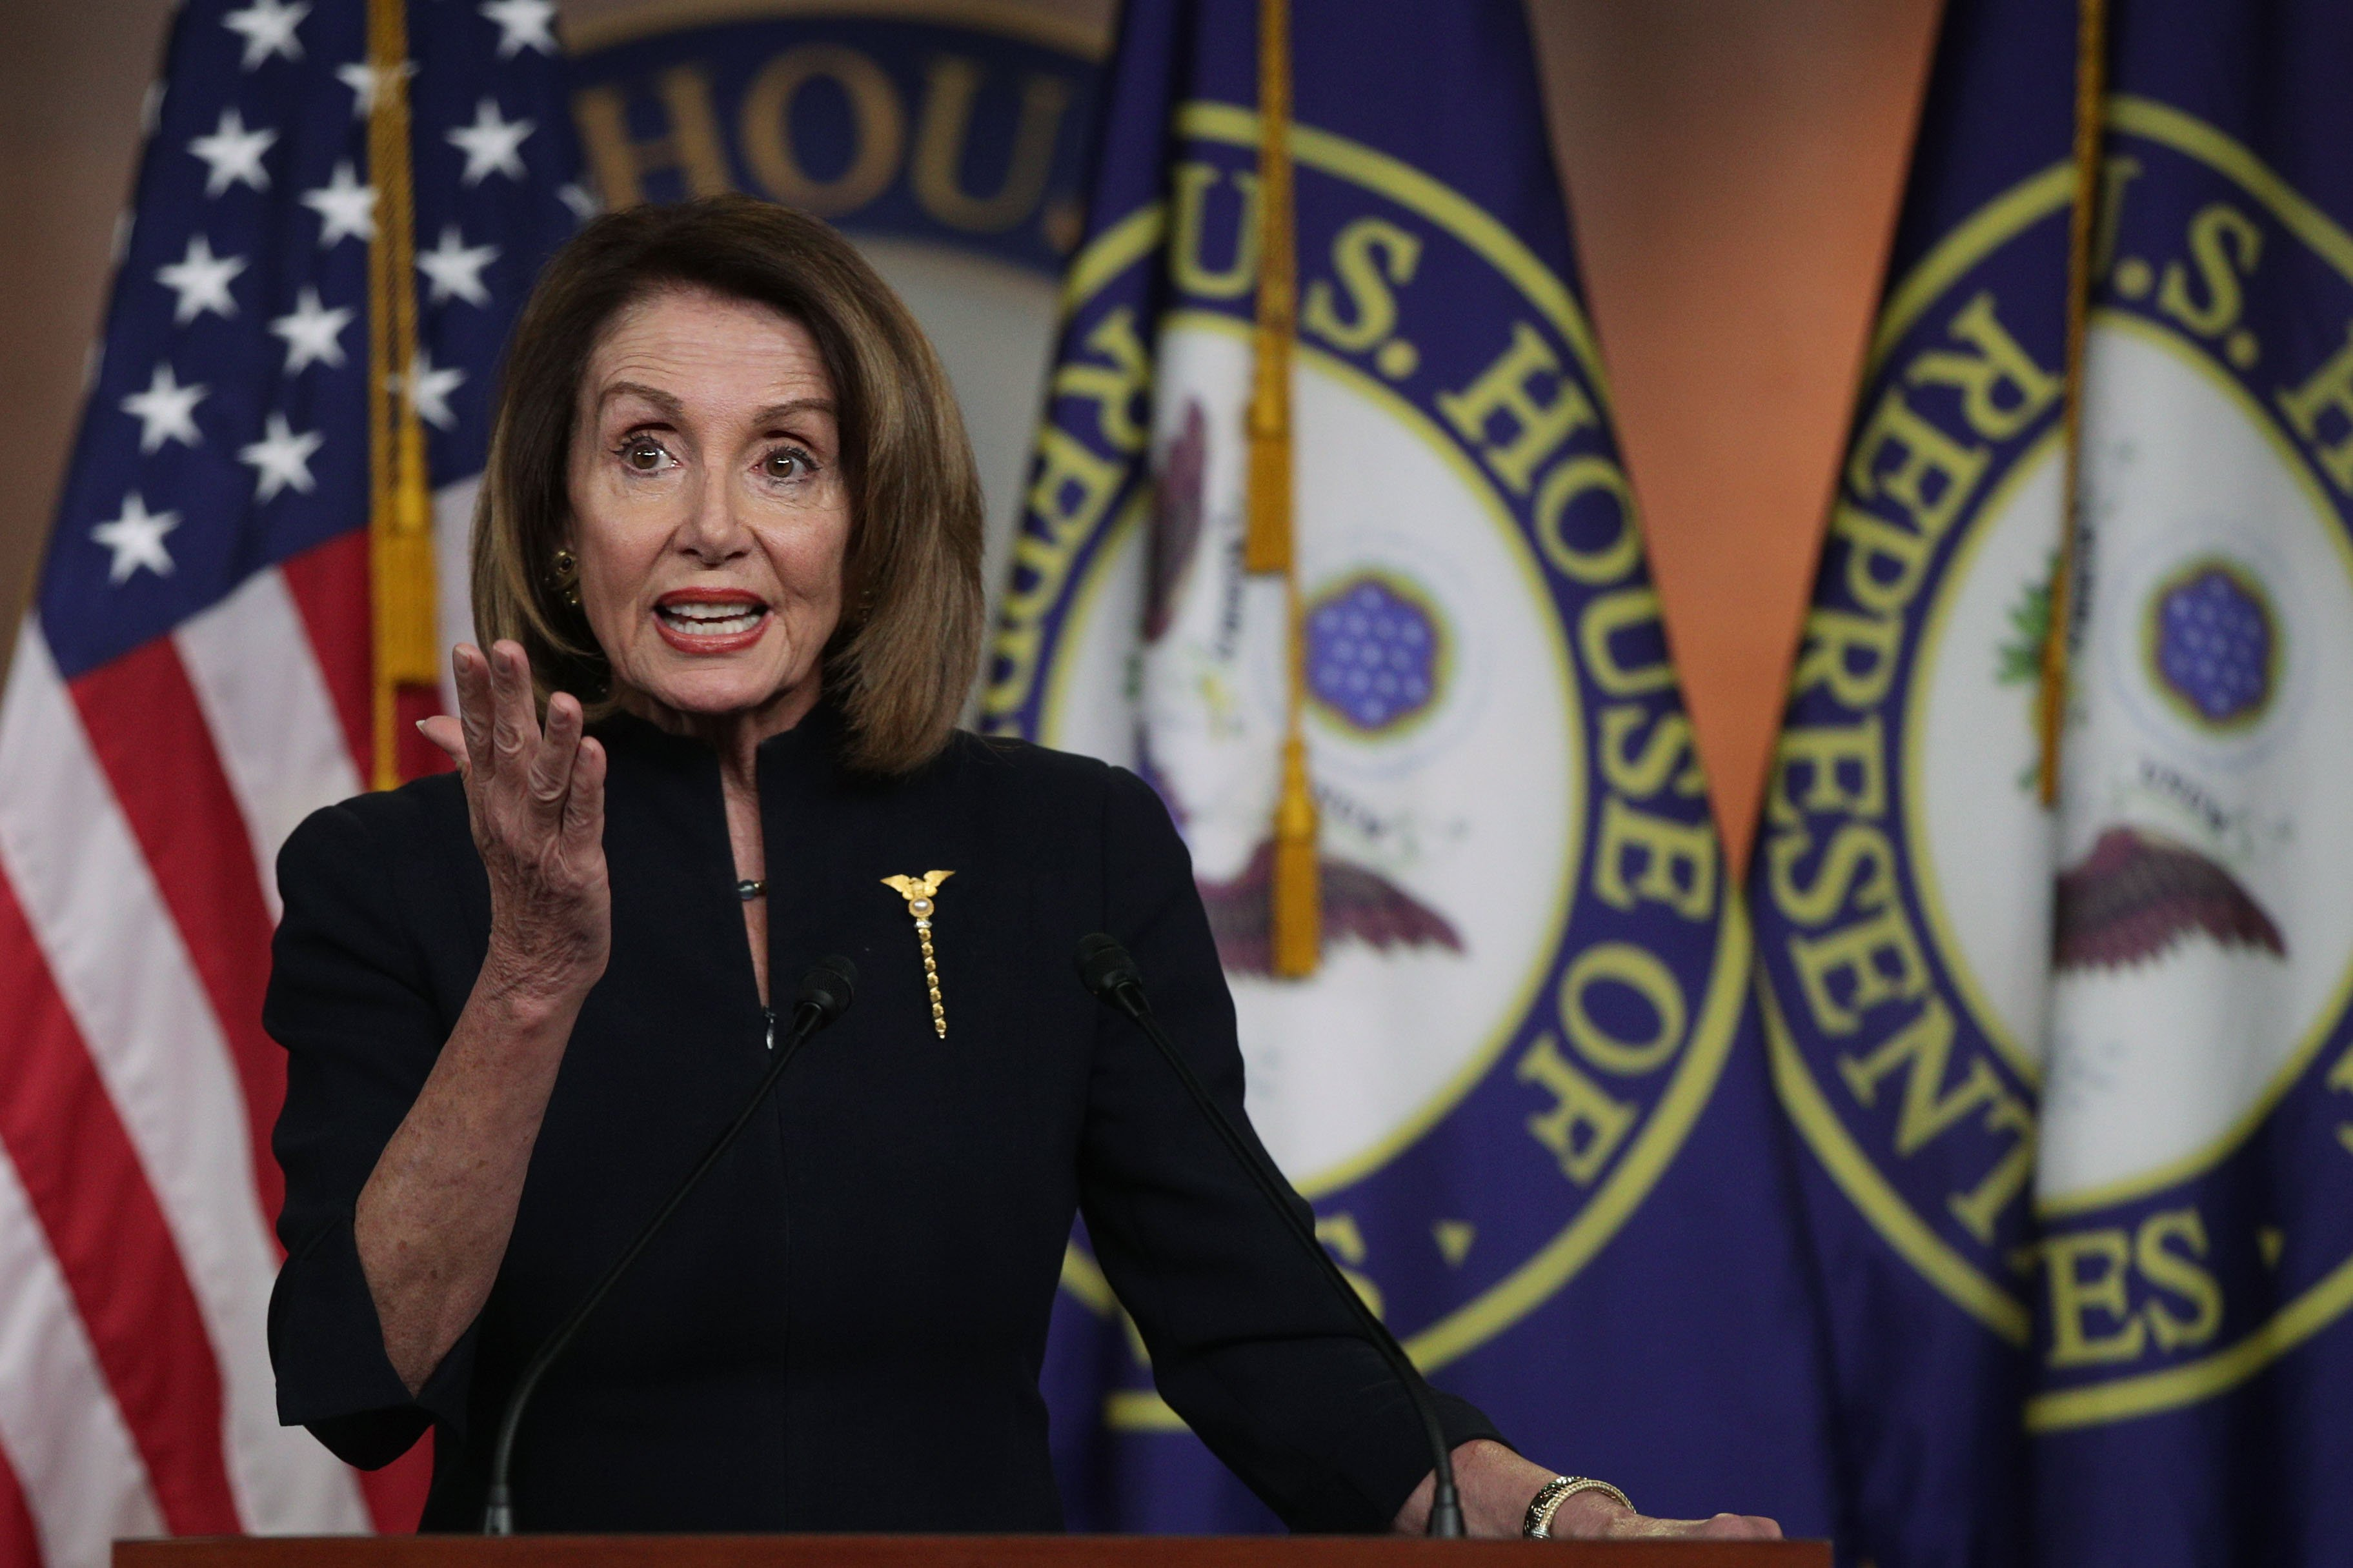 Speaker of the House Nancy Pelosi at a Weekly Press Conference | Photo: Getty Images